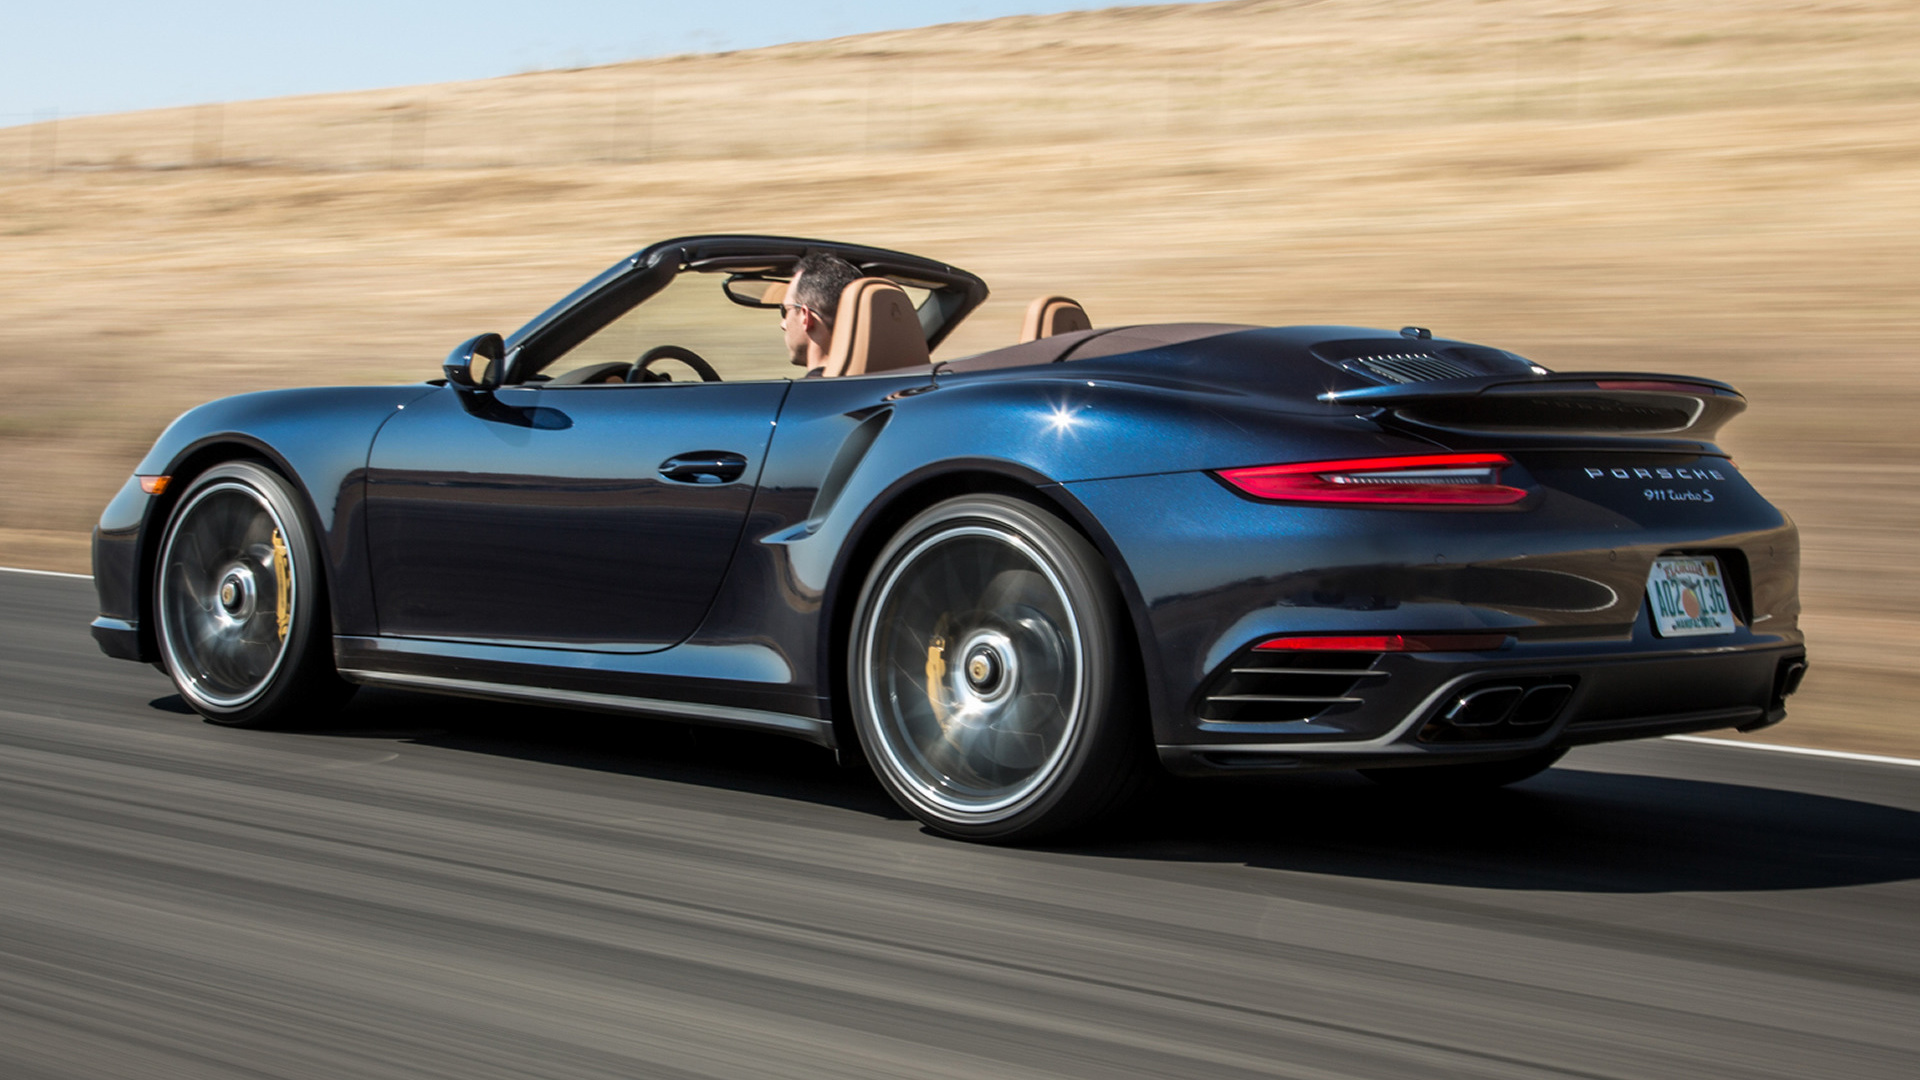 Porsche 911 Turbo S Cabriolet (2017) US Wallpapers and HD Images - Car ...